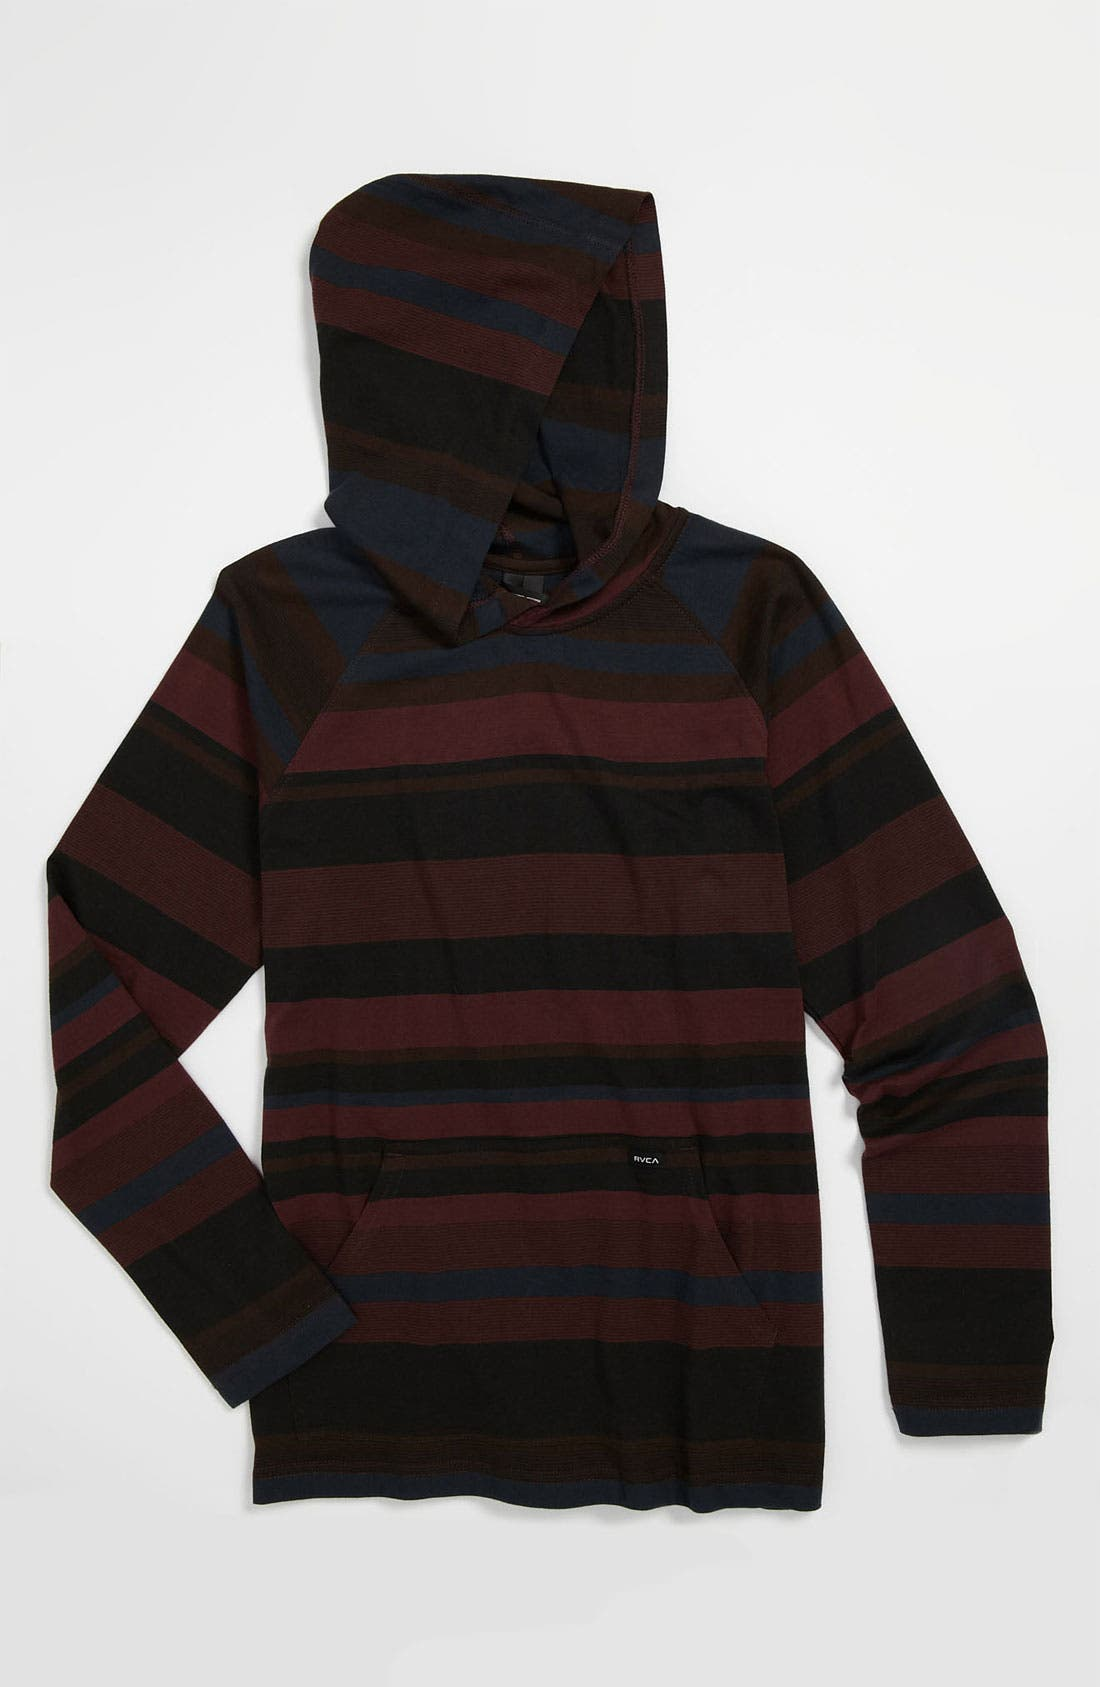 Main Image - RVCA 'Adirondak' Hooded Knit Shirt (Big Boys)